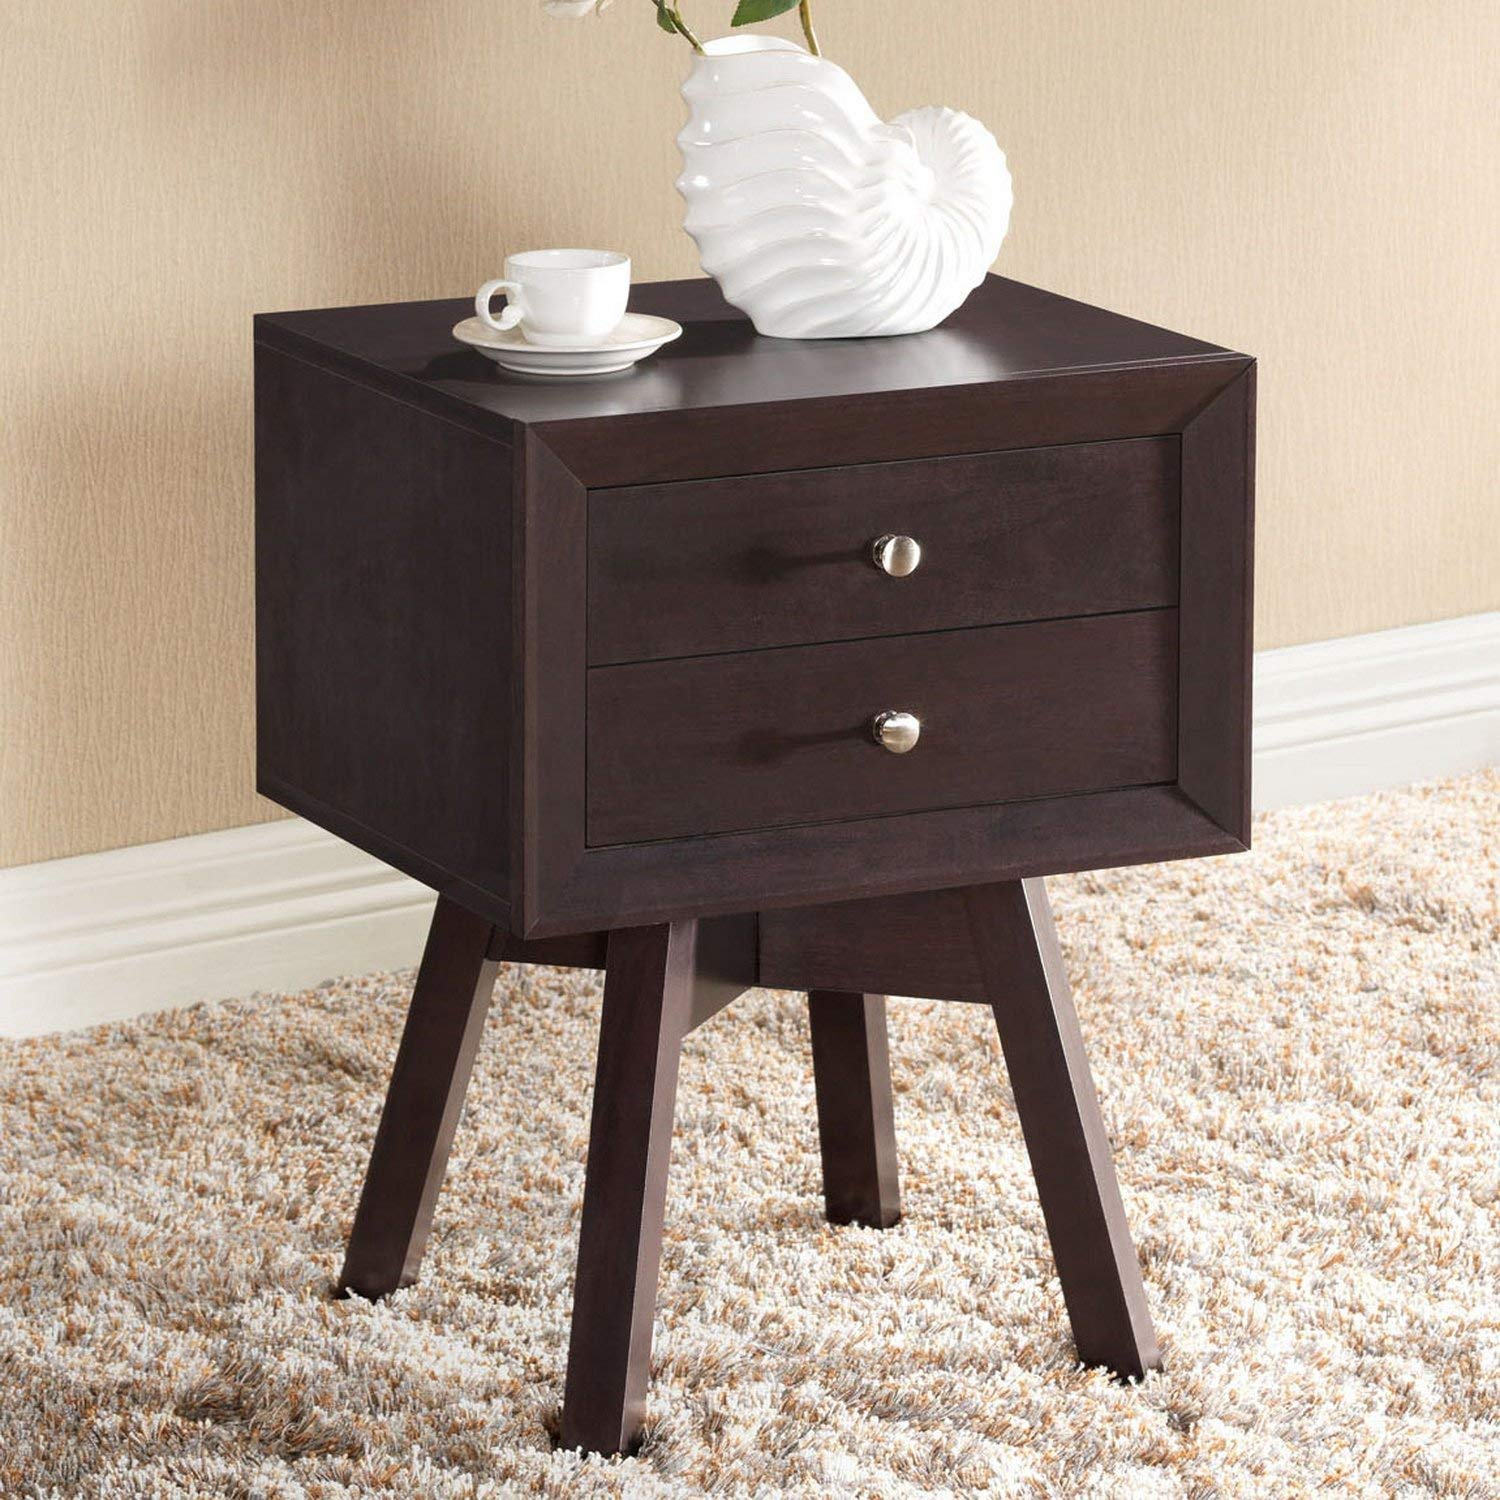 wedge table the perfect cool modern style end tables tures baxton studio warwick accent and nightstand brown kitchen dining oak corner distressed wood pipe fitting coffee counter